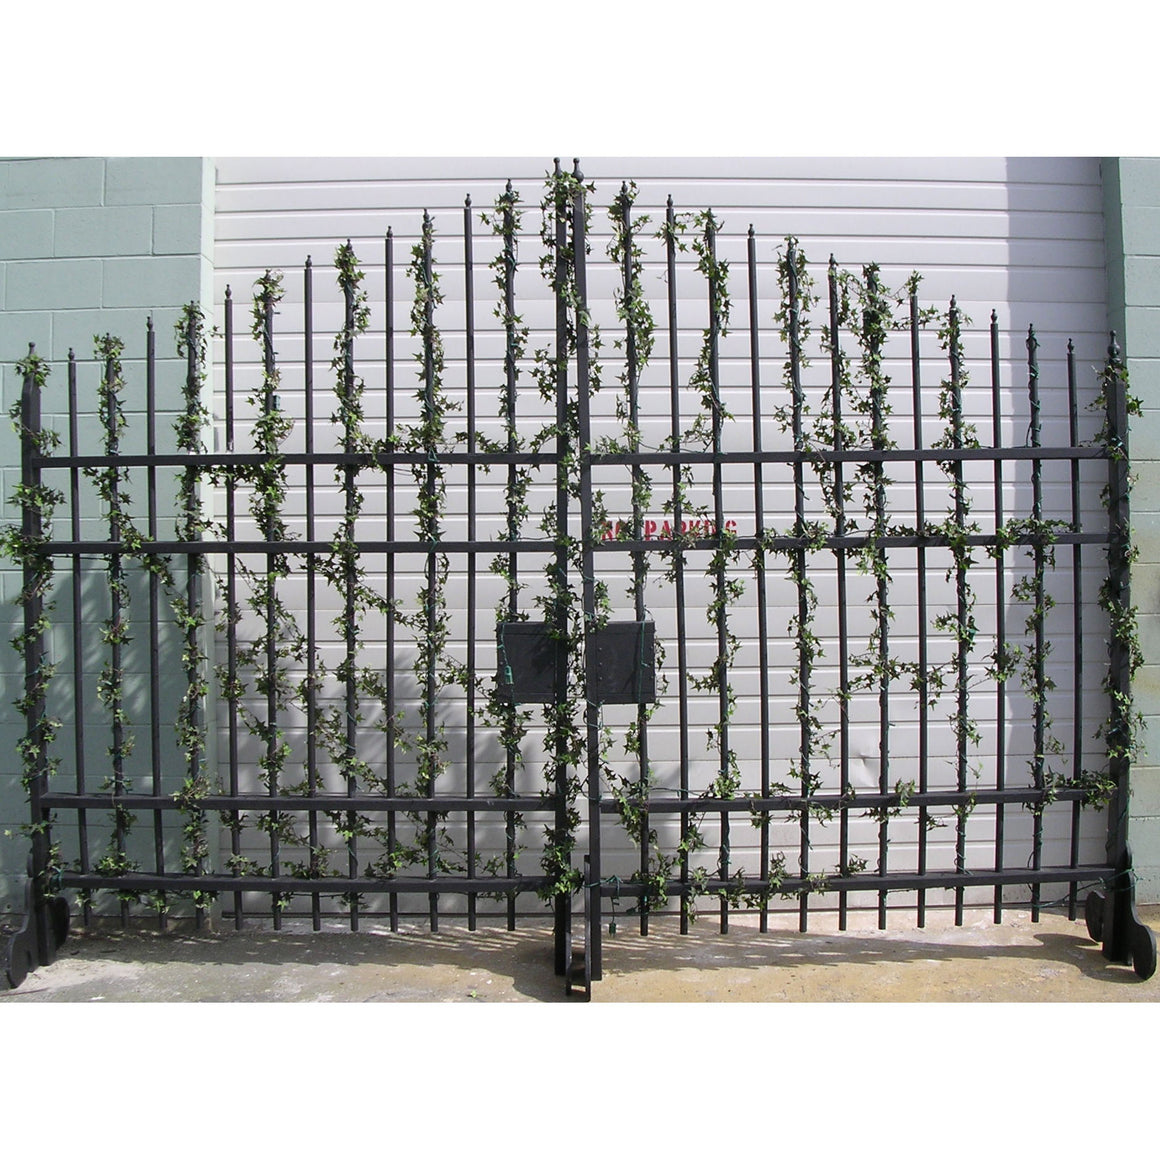 Wrought Iron Gates - Set of 2